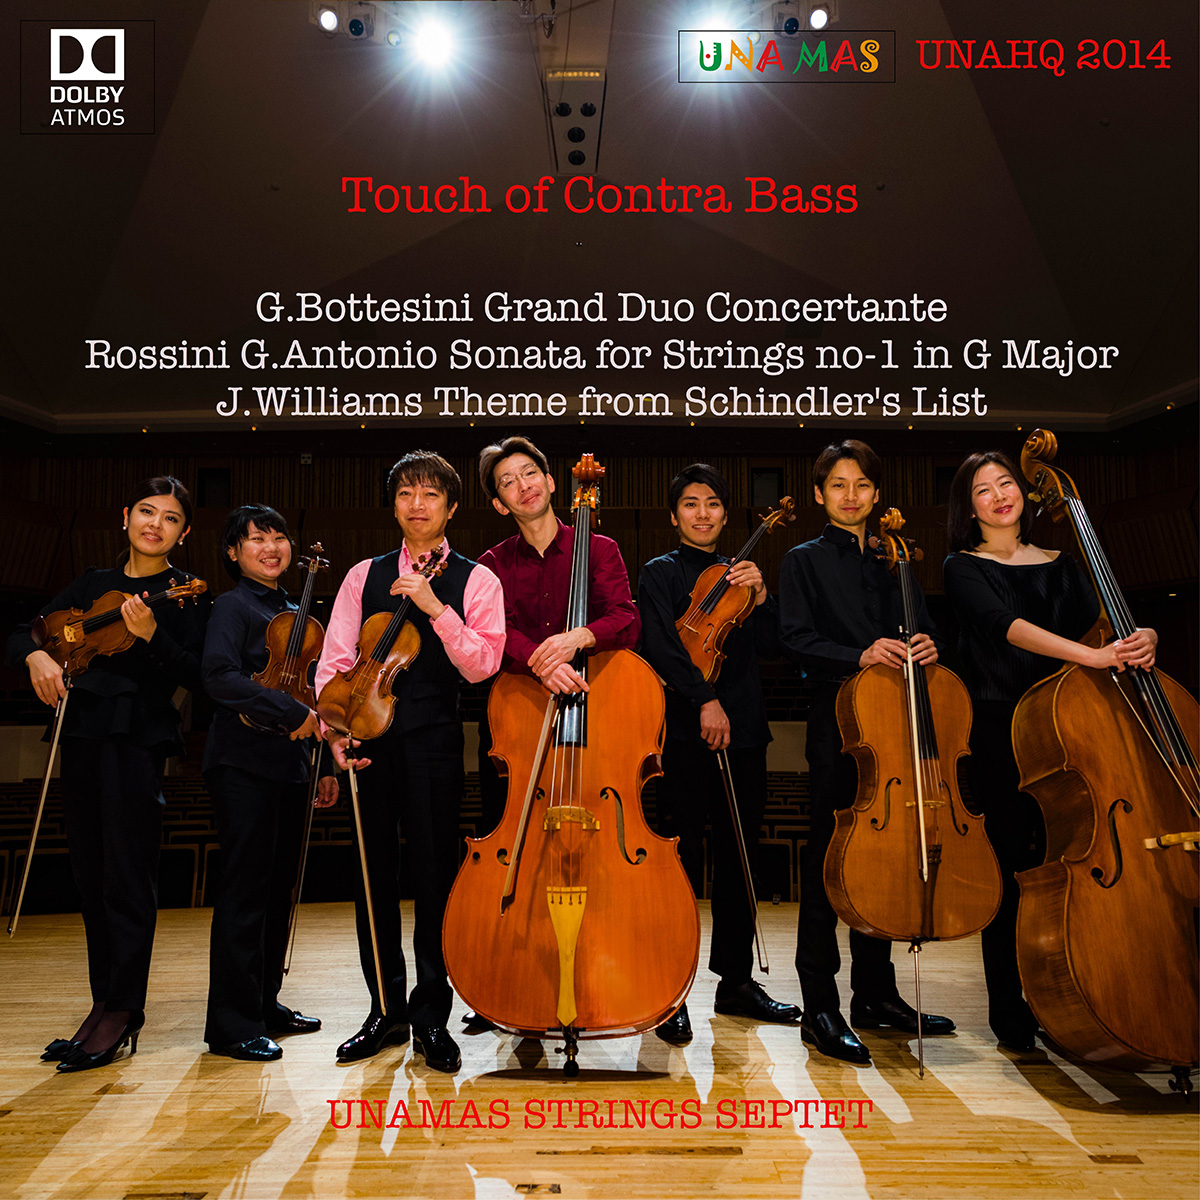 UNAHQ 2014 Touch of ContraBass - Dolby Atmos